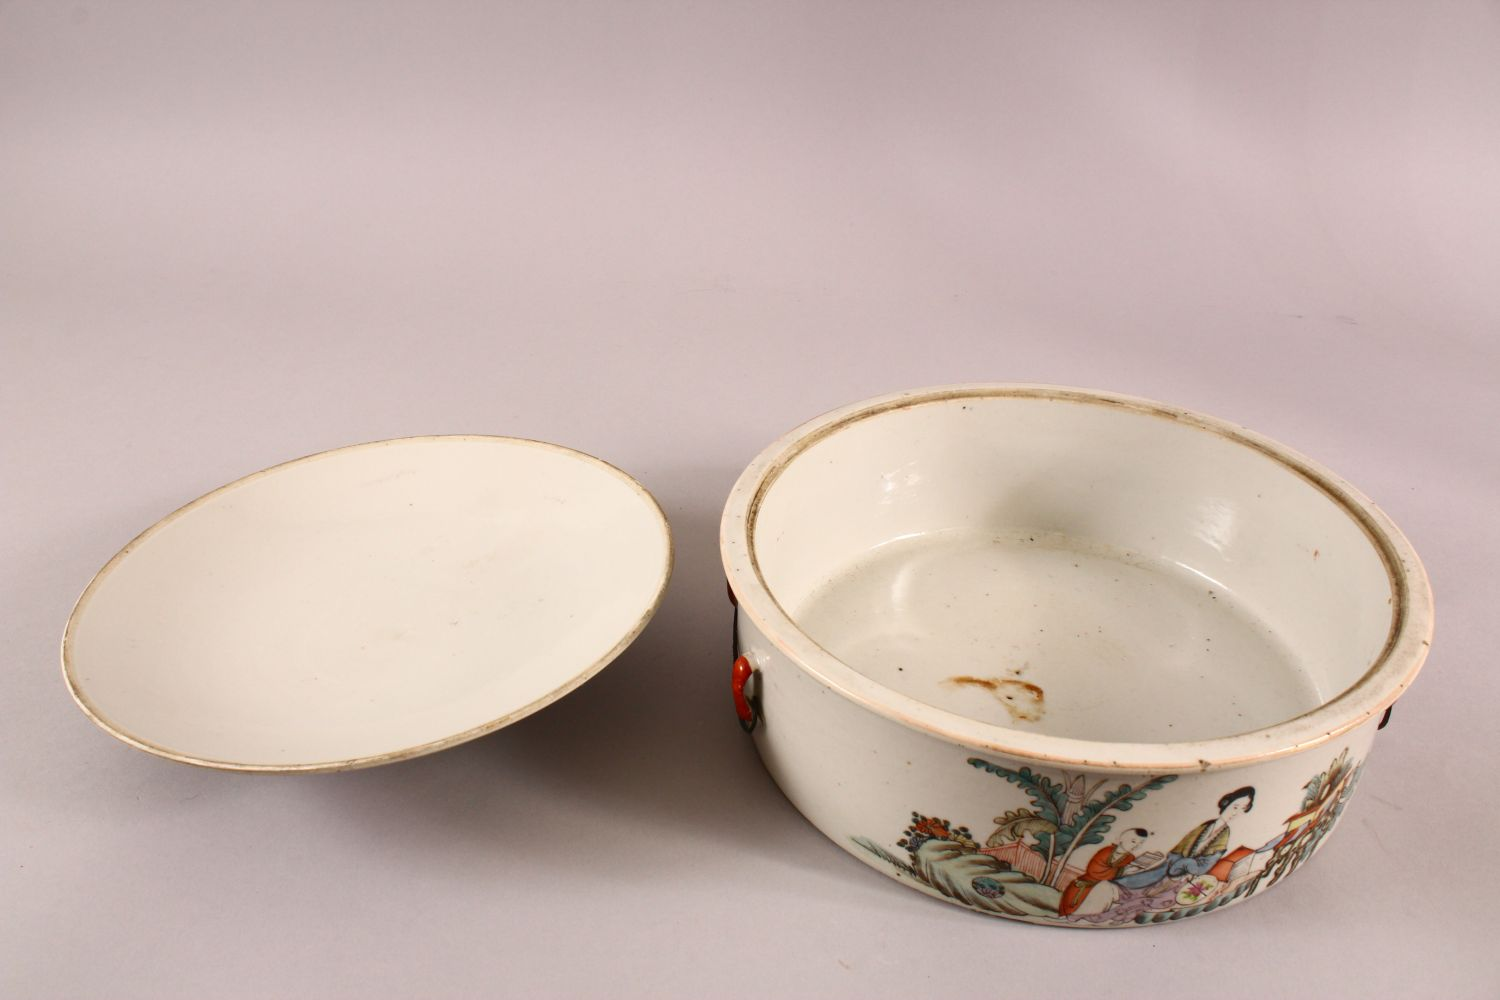 A 19TH CENTURY CHINESE FAMILLE ROSE PORCELAIN BOWL & COVER, with decoration of figures in - Image 5 of 6